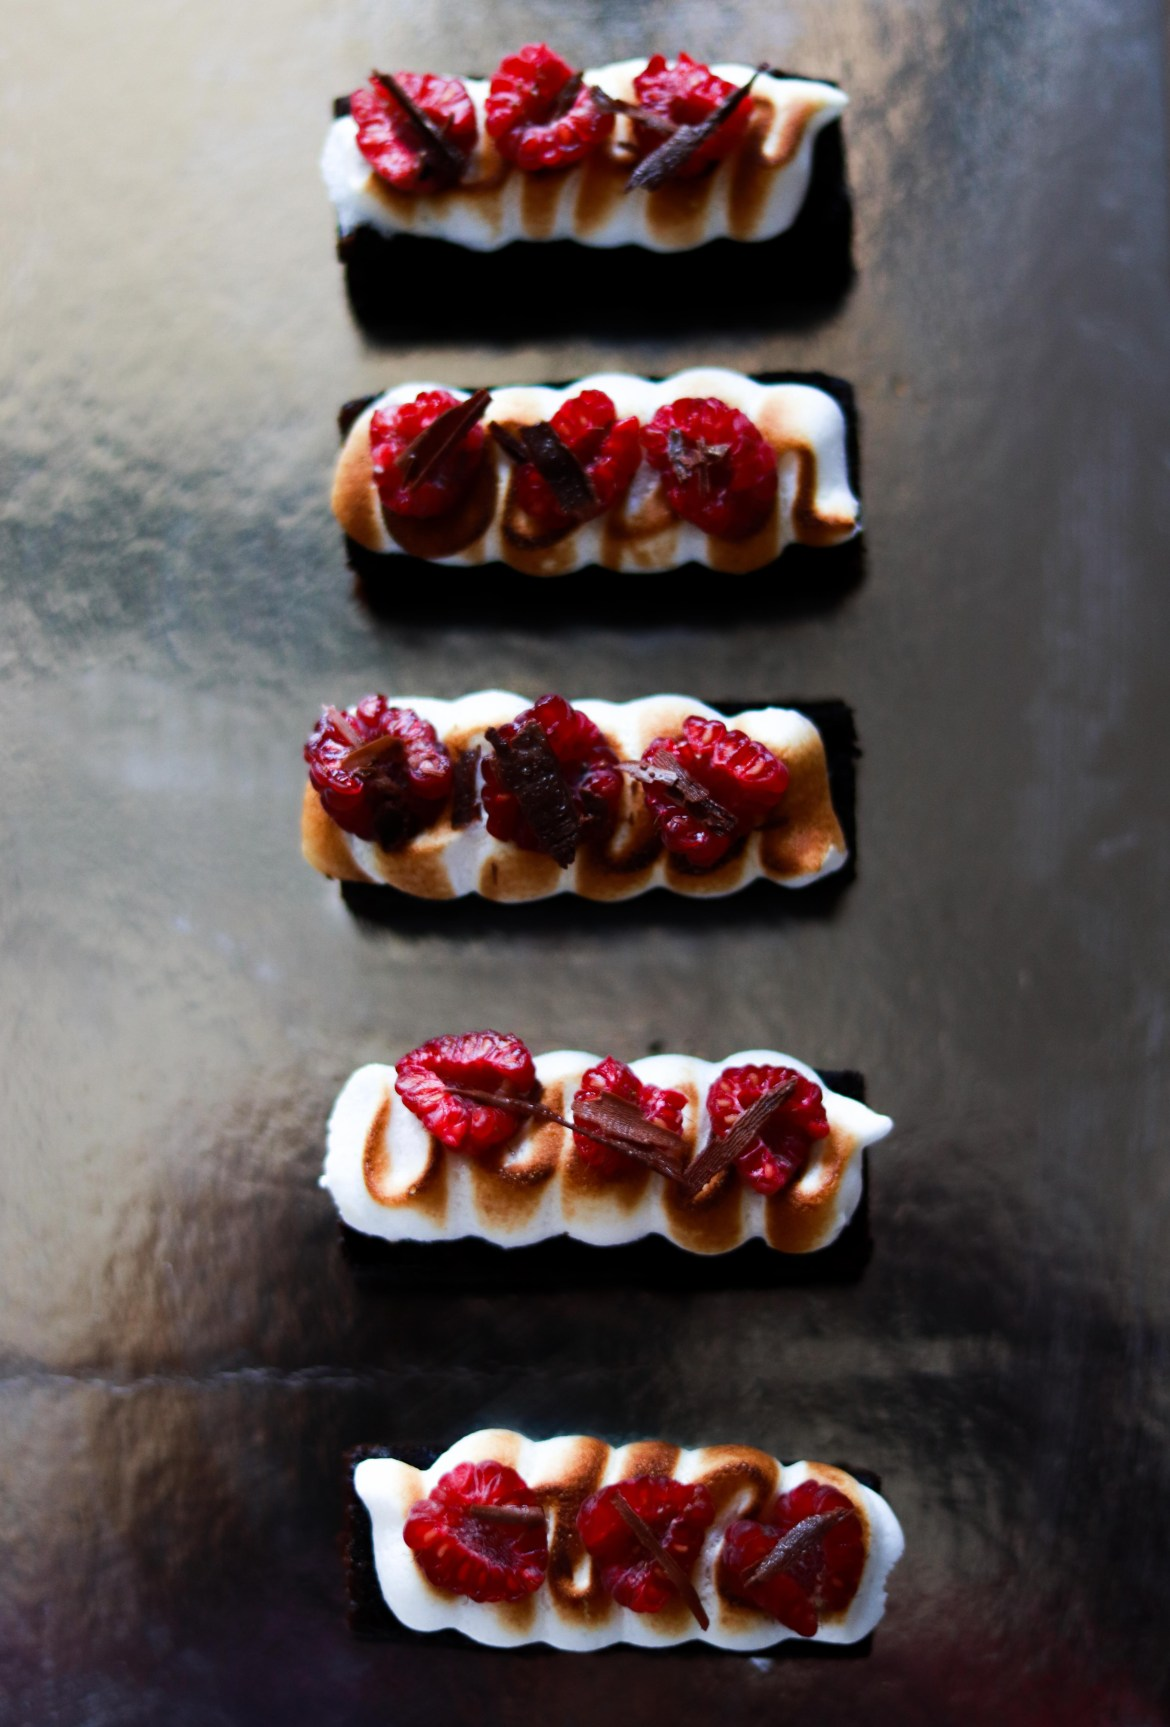 Chocolate_sour_cream_cake_with_meringue_raspberry_and_shaved_chocolate6